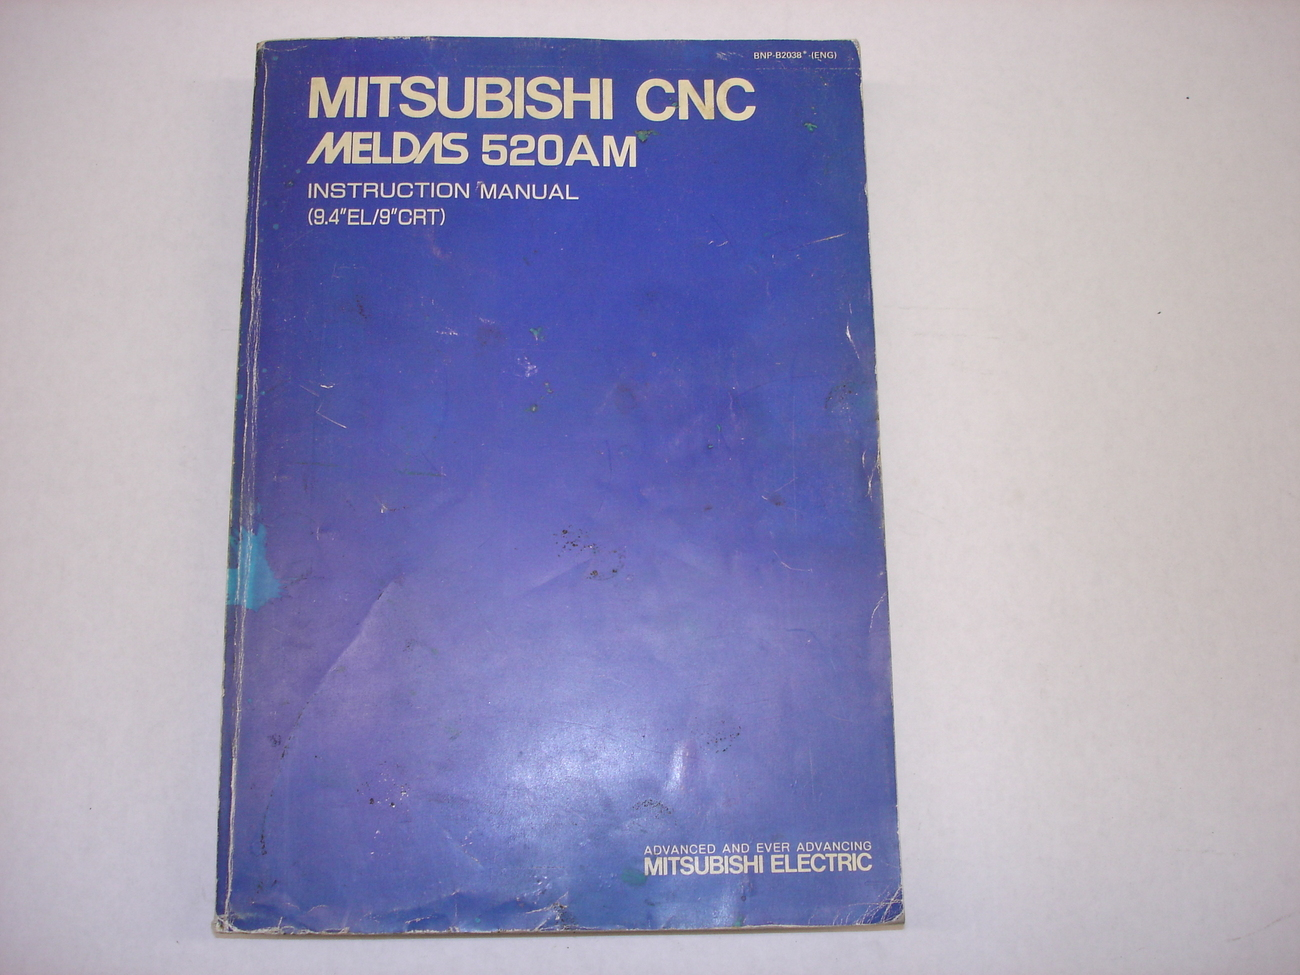 Mitsubishi CNC Meldas 520AM Instruction Manual